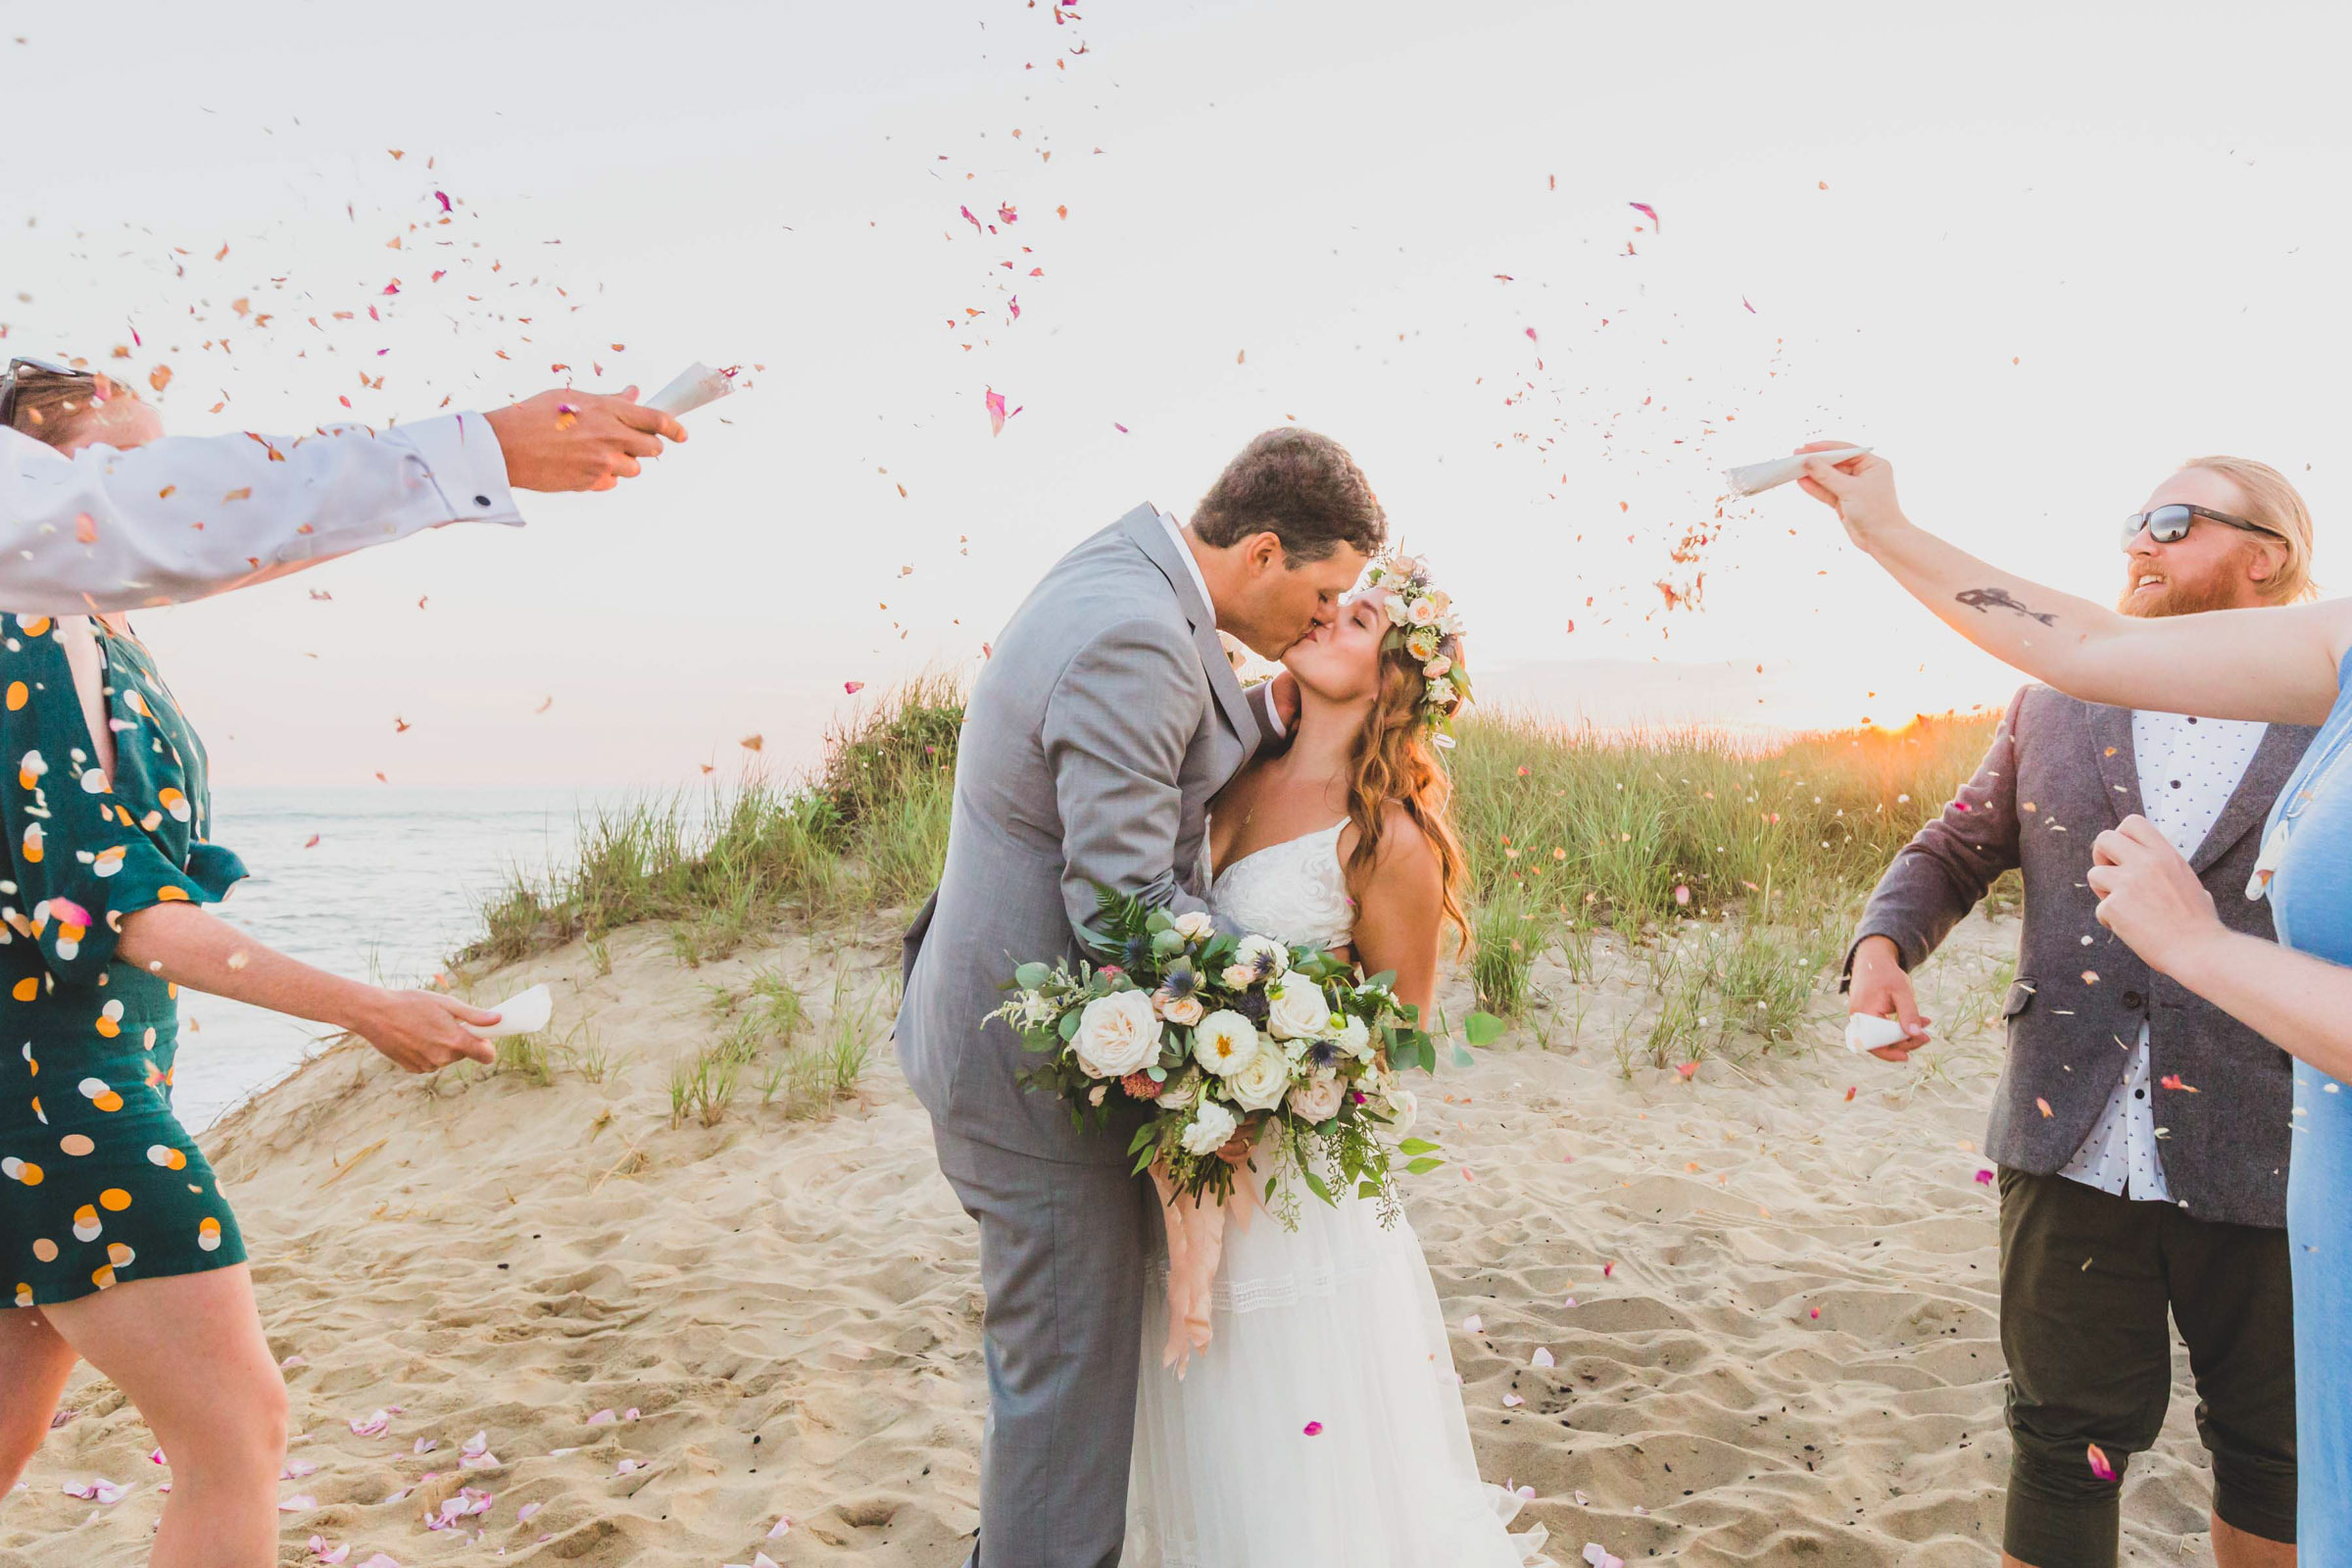 Ceremonial couple kiss under confetti - photo by Katie Kaizer Photography